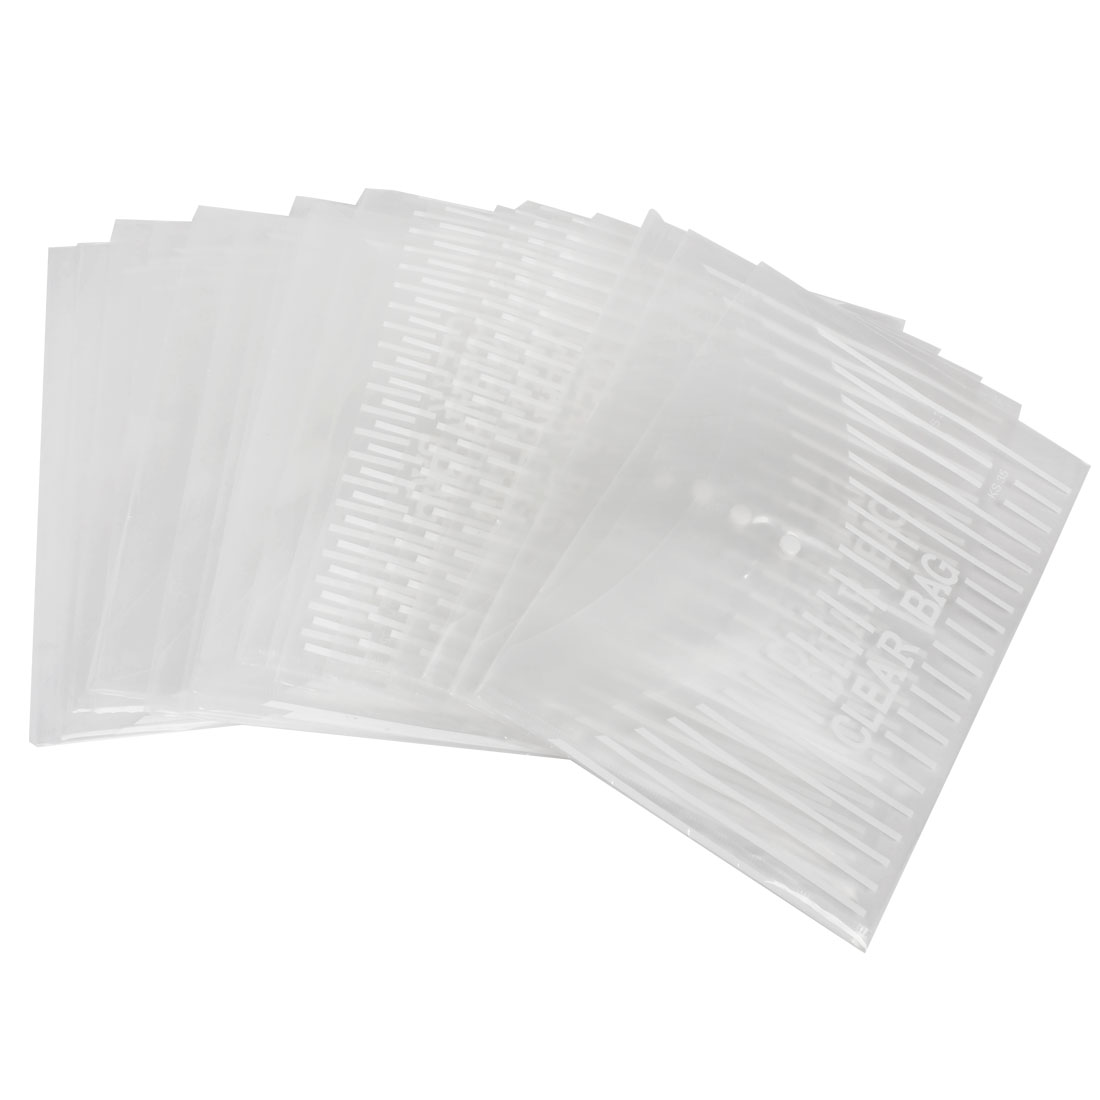 20 Pieces White Clear Plastic Press Stud Closure Bag for A4 Paper